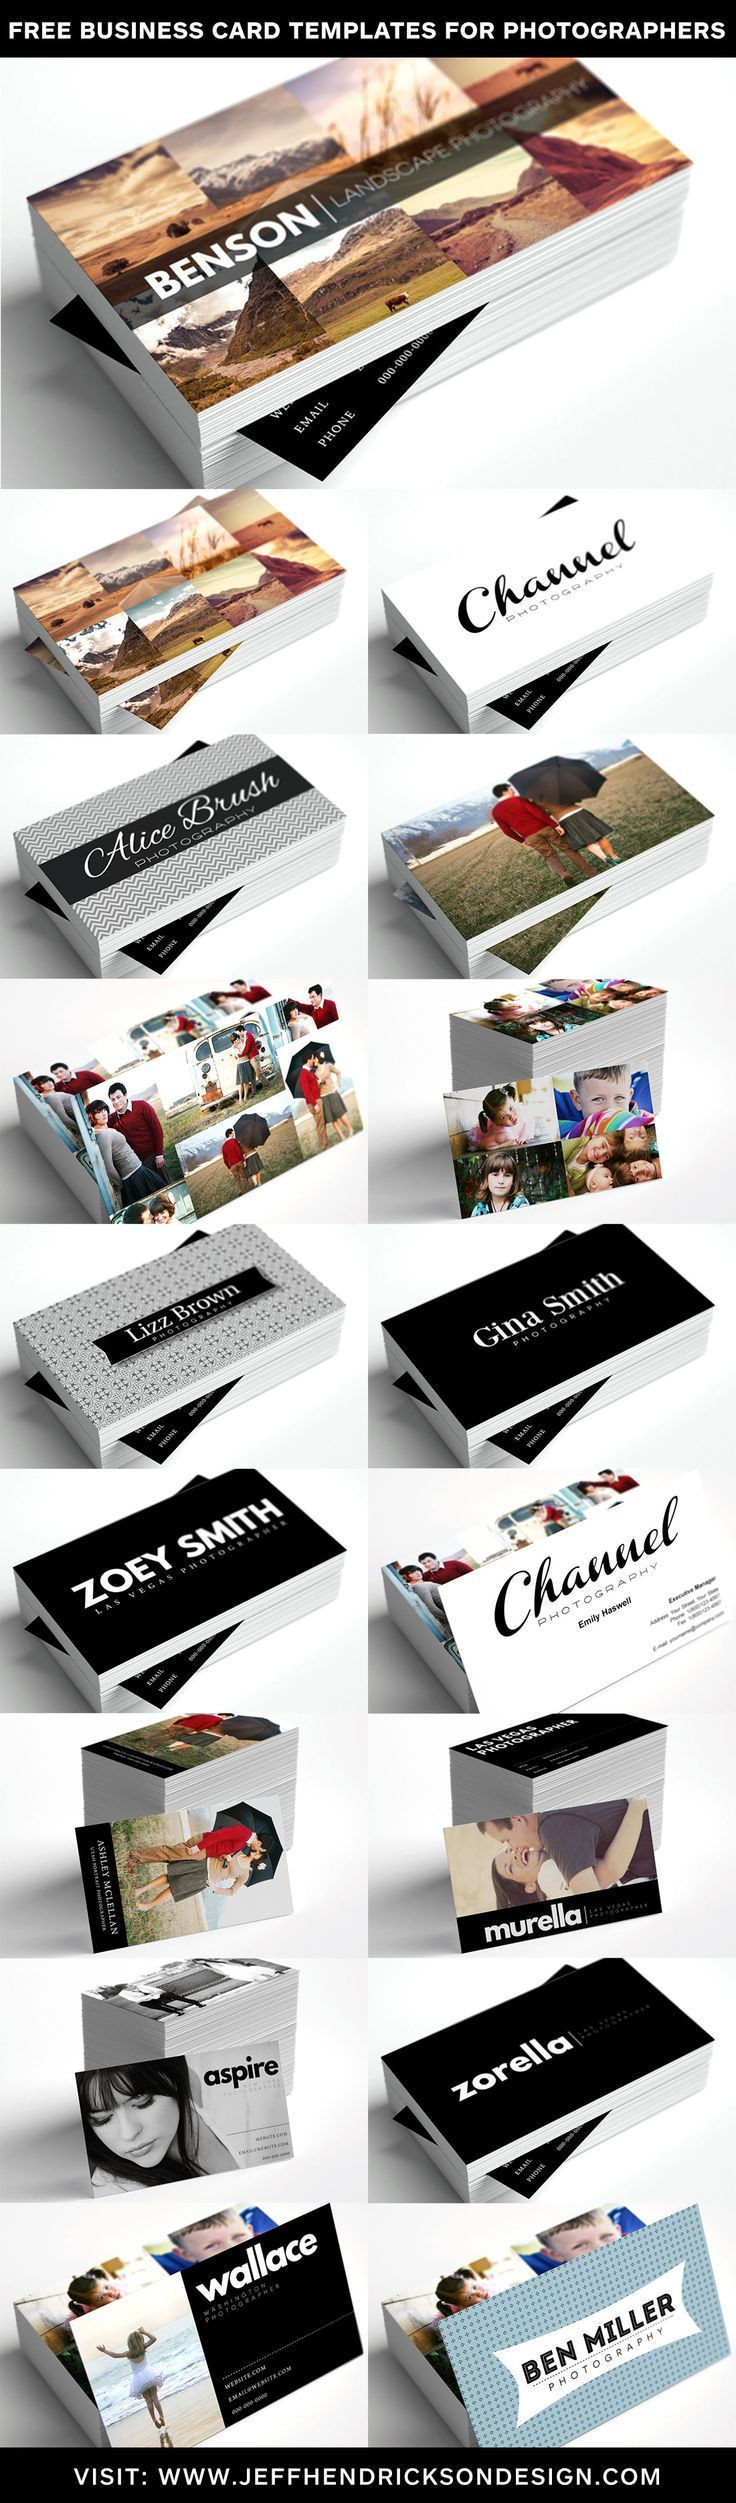 13 Free Business Card Templates For Photographers Hi Res Printable